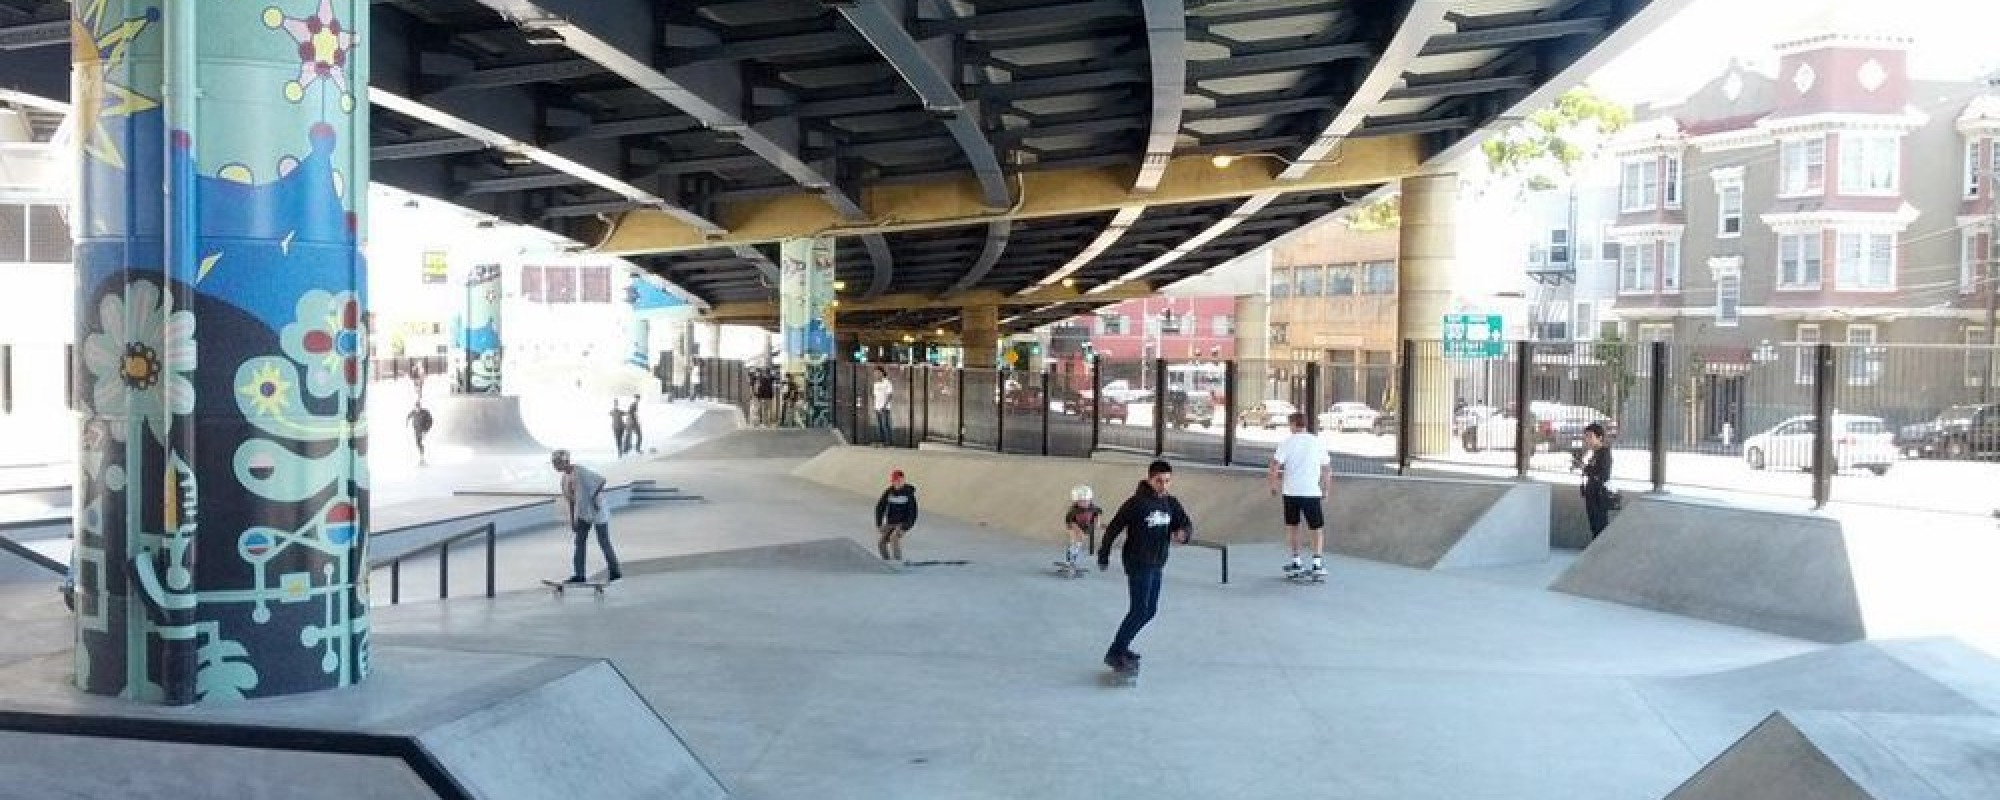 SoMa West - Skate Park and Dog Play Area